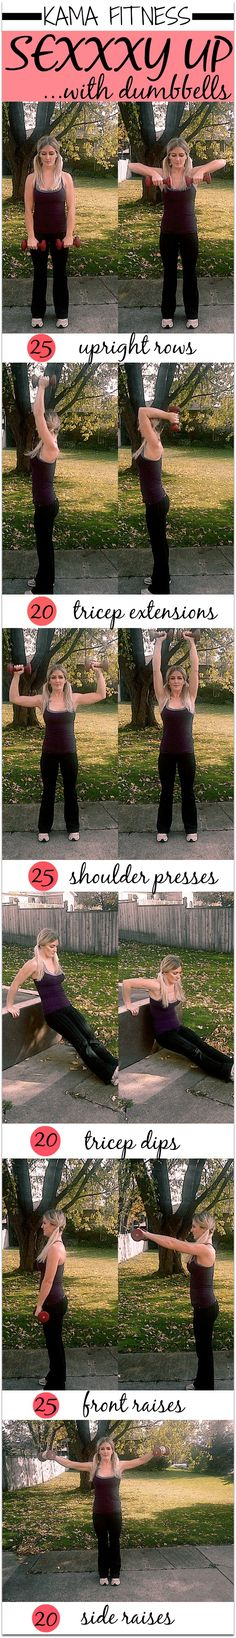 Arm Workout [ SkinnyFoxDetox.com ] #fitness #skinny #health